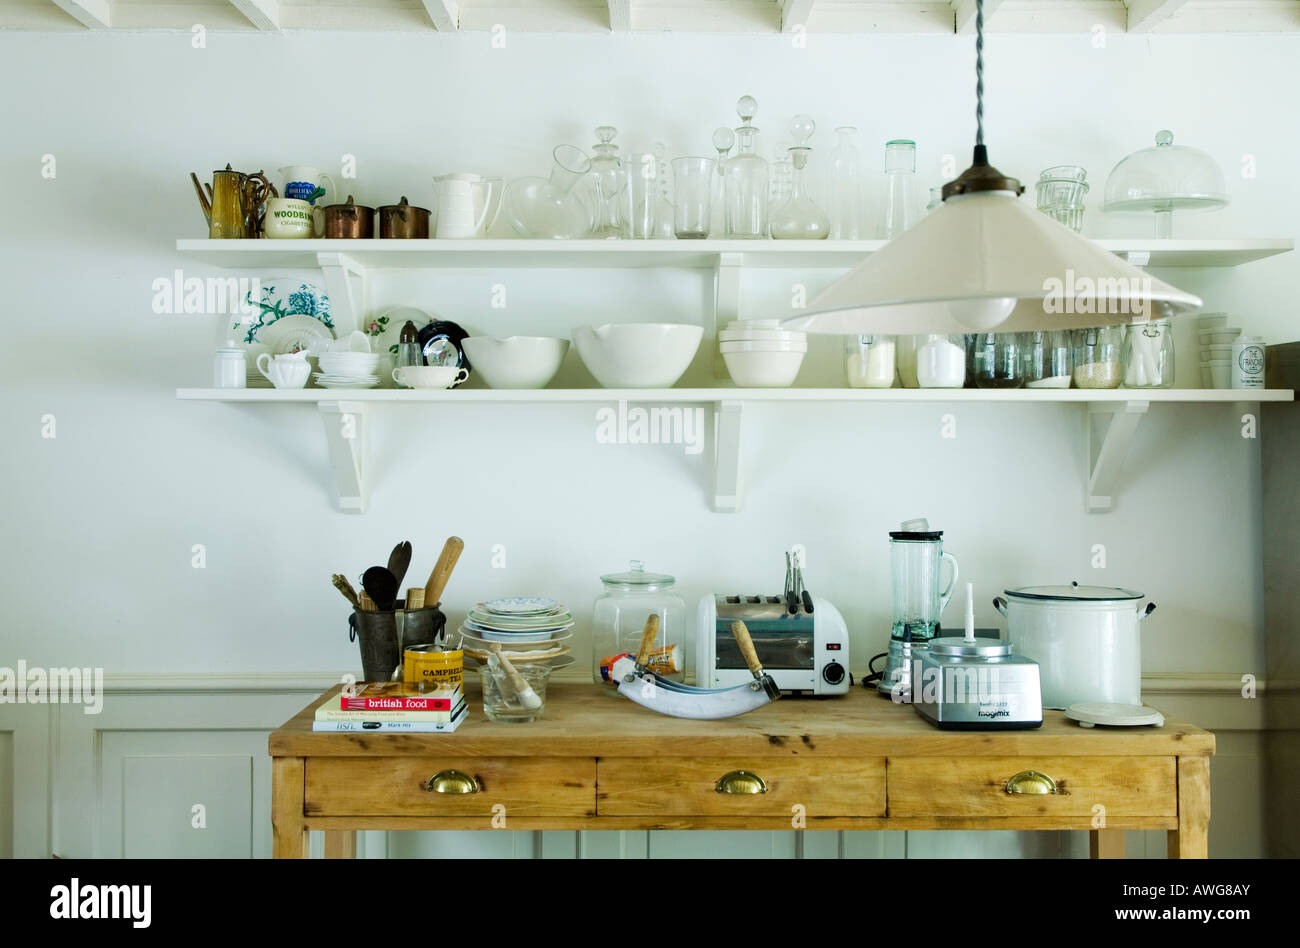 partial view of the kitchen in the home of a well known London chef - Stock Image